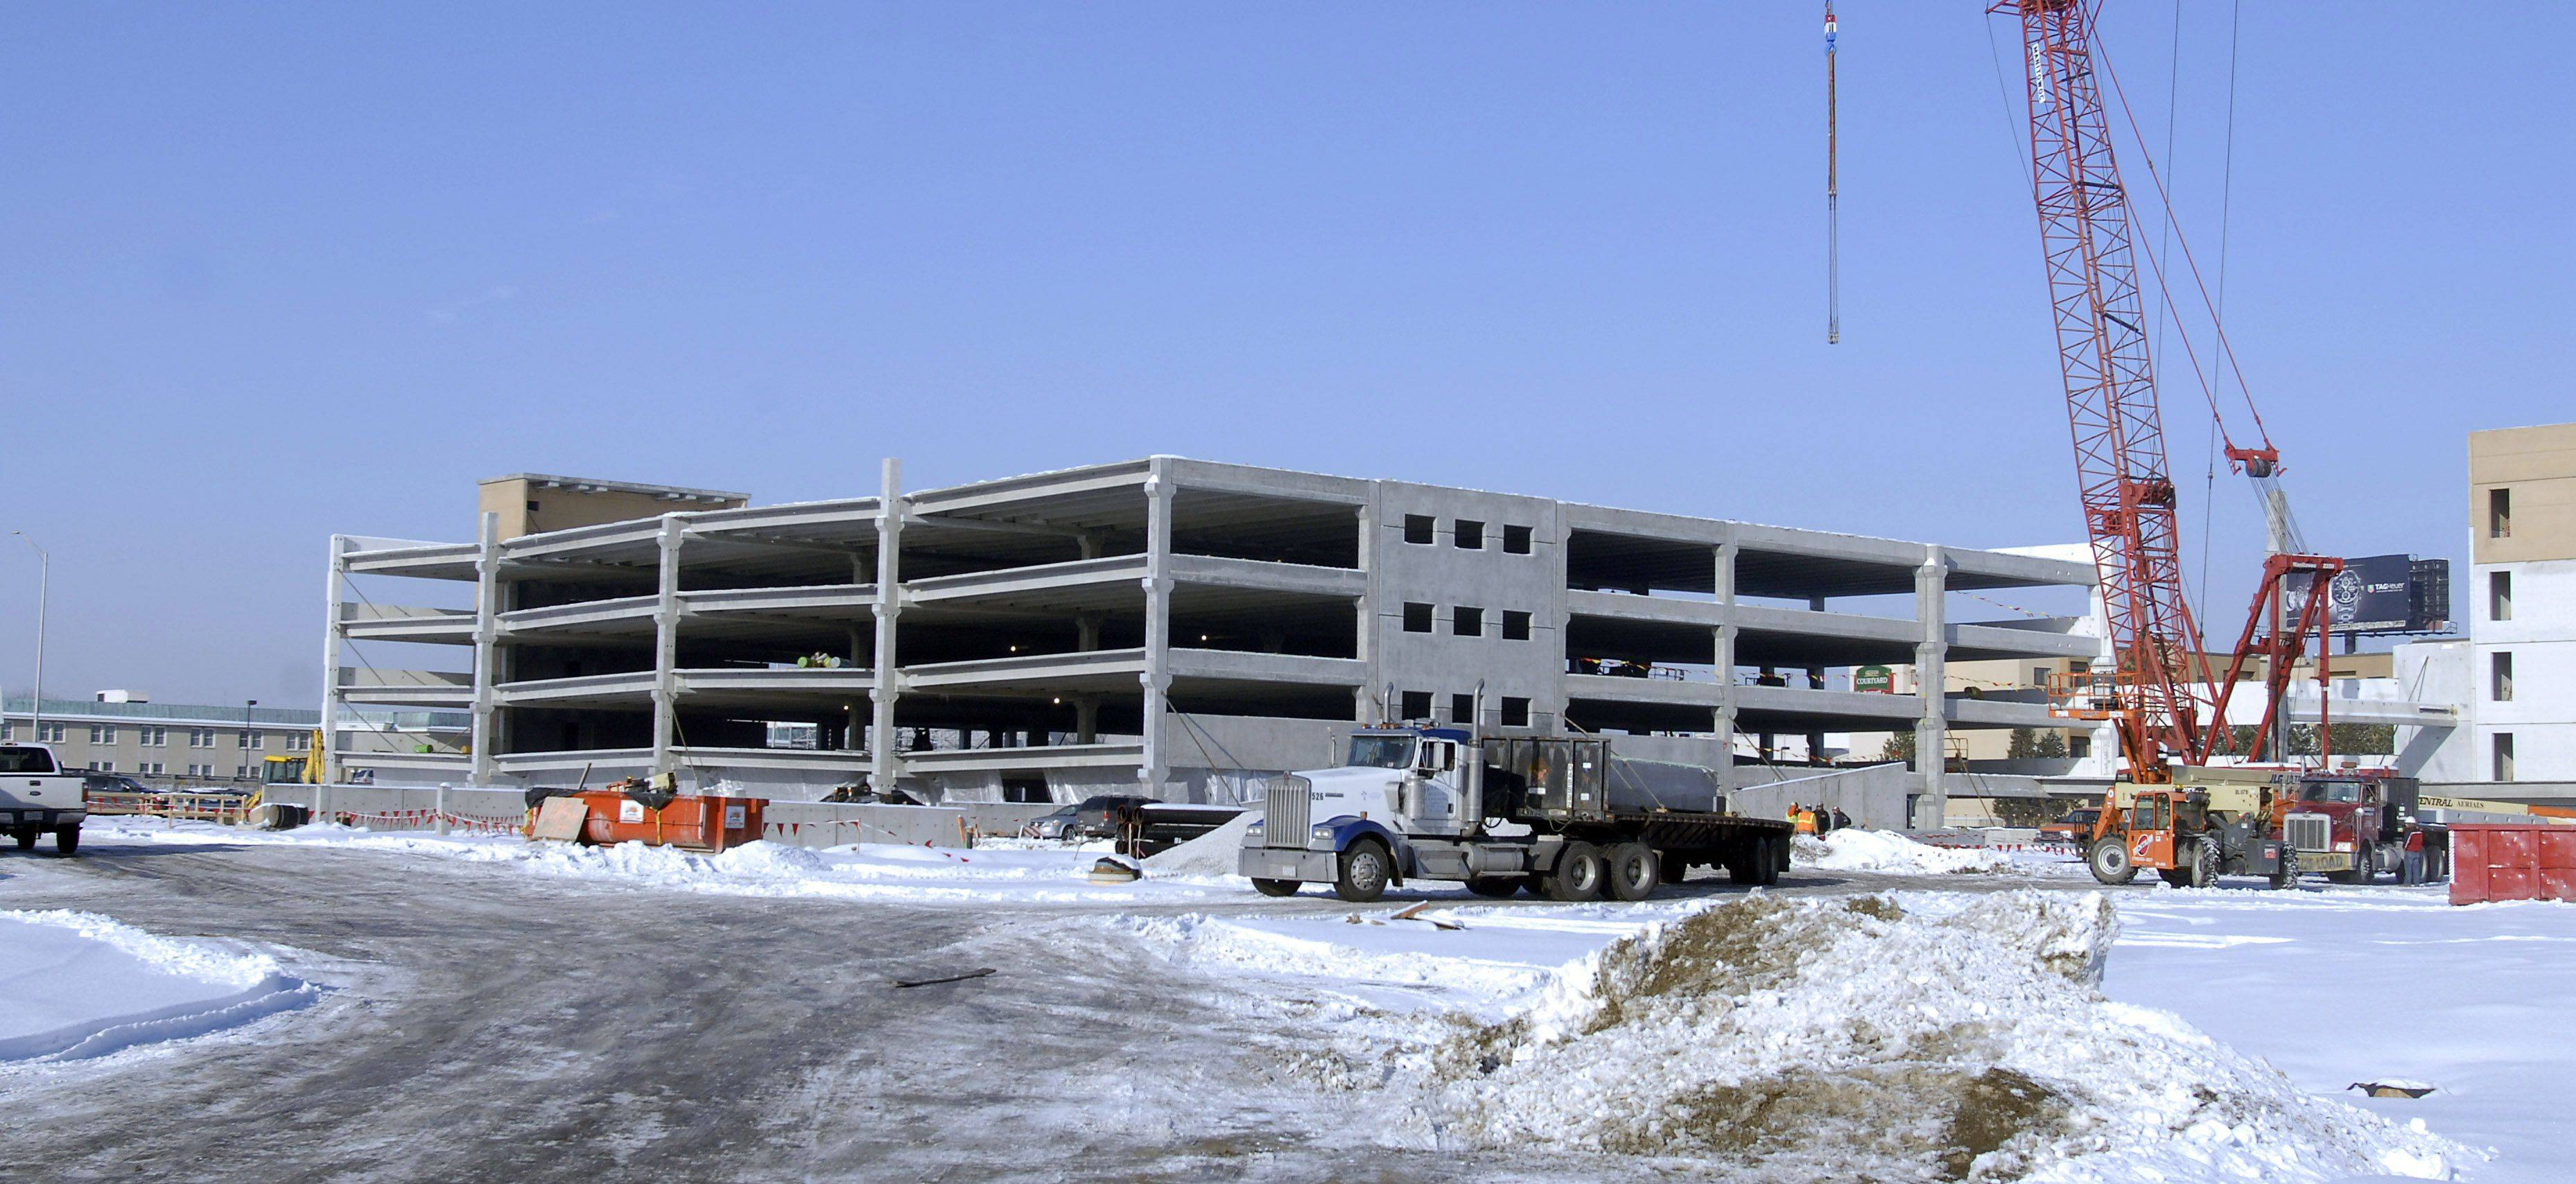 The parking garage under construction across from the Des Plaines casino is nearly complete.